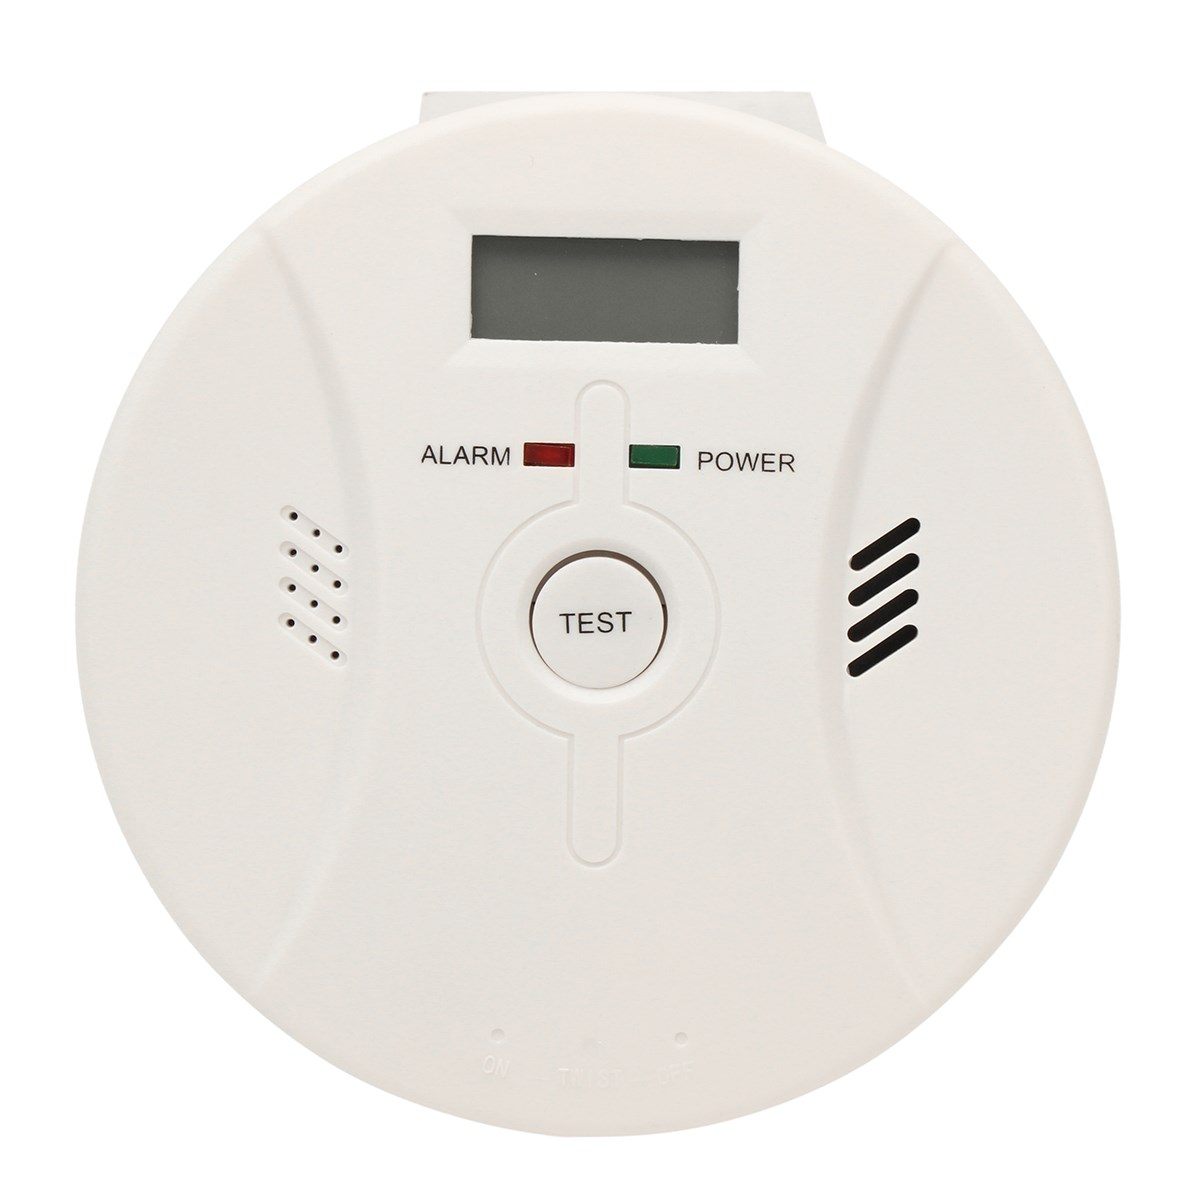 NEW High Sensitive Digital LCD CO Carbon Monoxide Detector Poisoning Smoke Fire Alarm Warning Sensor For Home Security Safety new 1pc home safety high sensitive lcd co carbon monoxide poisoning sensor alarm warning detector tester